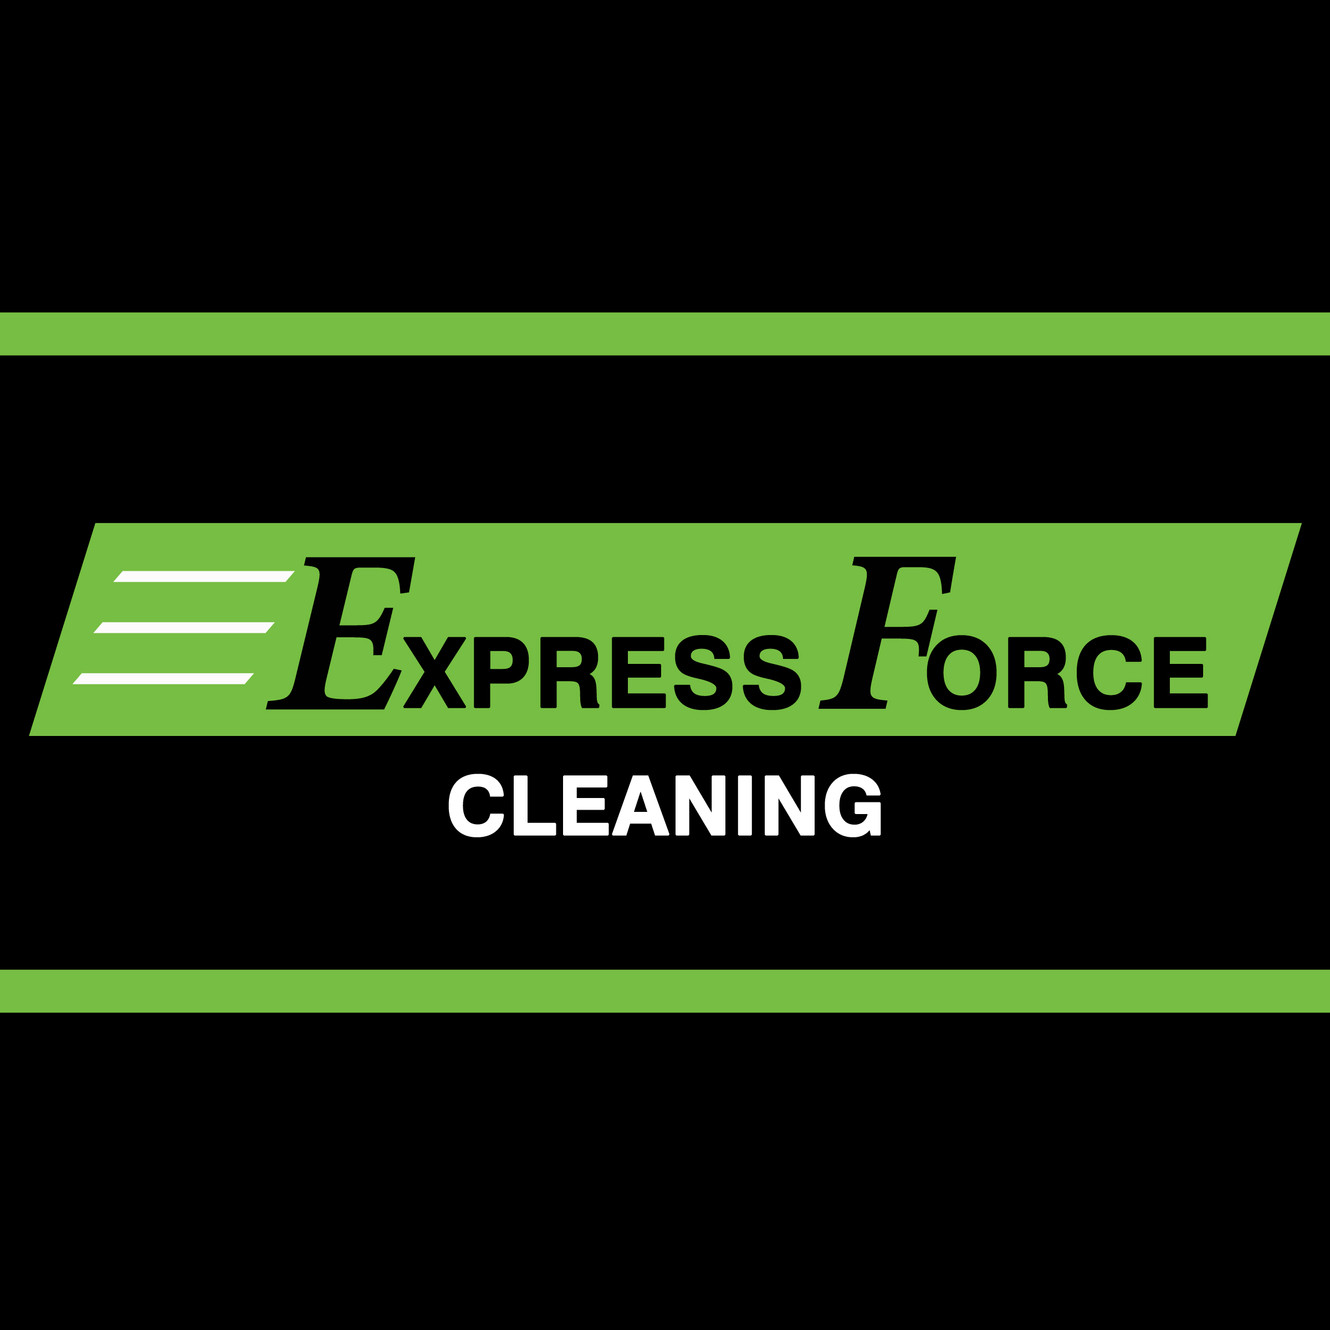 Express Force Cleaning logo